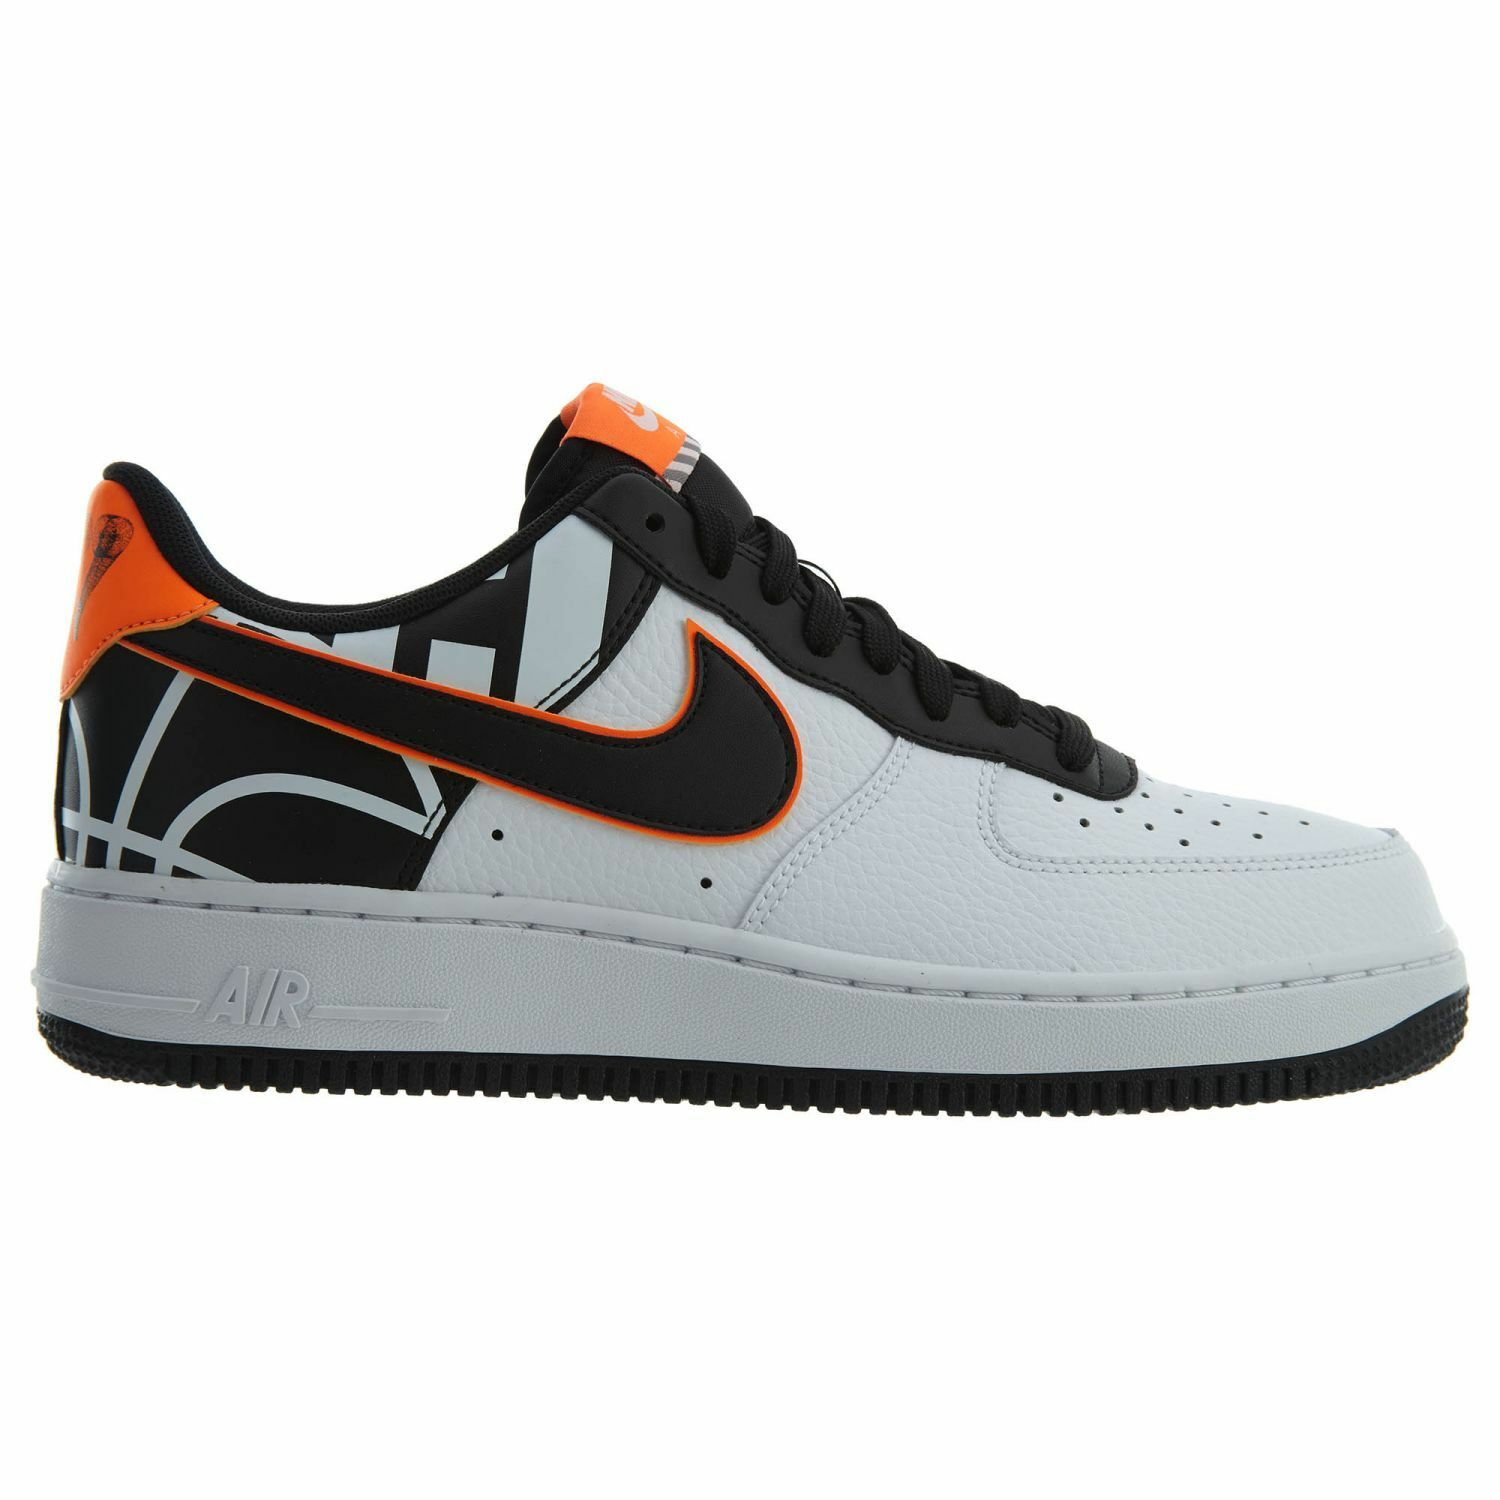 Nike Air Force 1 '07 LV8 Mens 823511-104 White Black Orange Low Shoes Comfortable Wild casual shoes